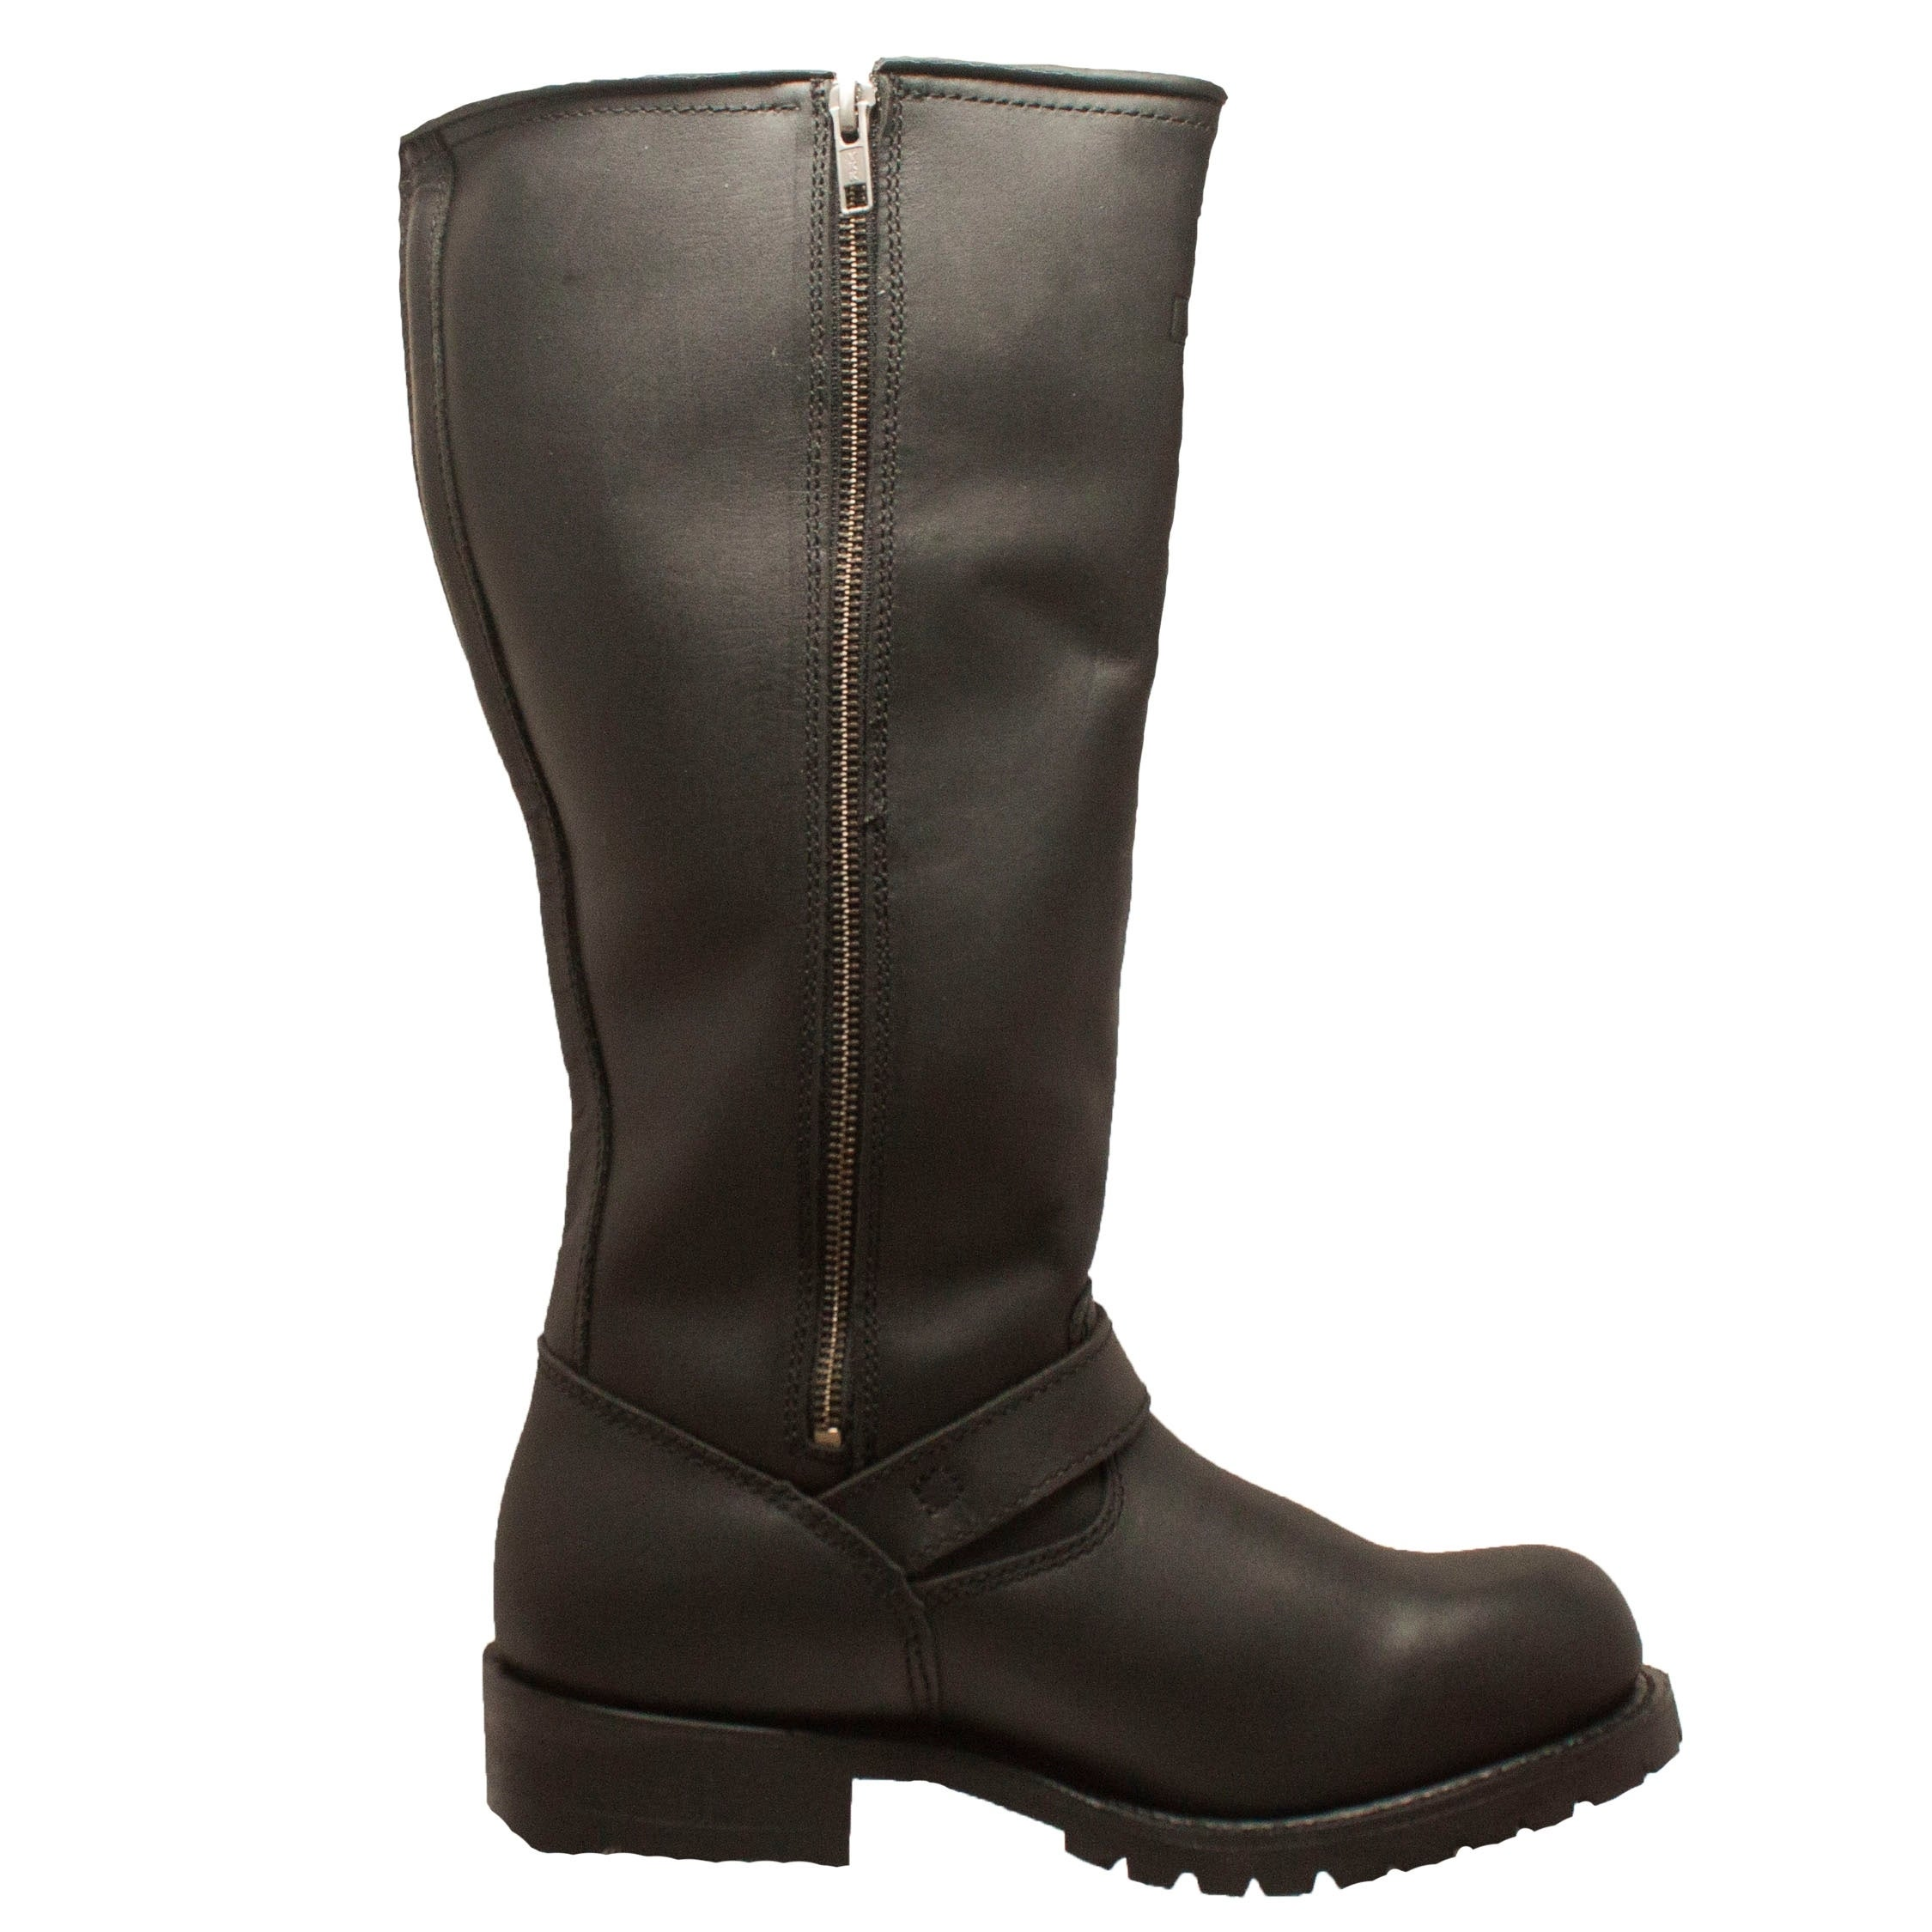 Men/'s Harness Boots Motorcycle Biker Full Grain Leather Engineer Riding Sizes